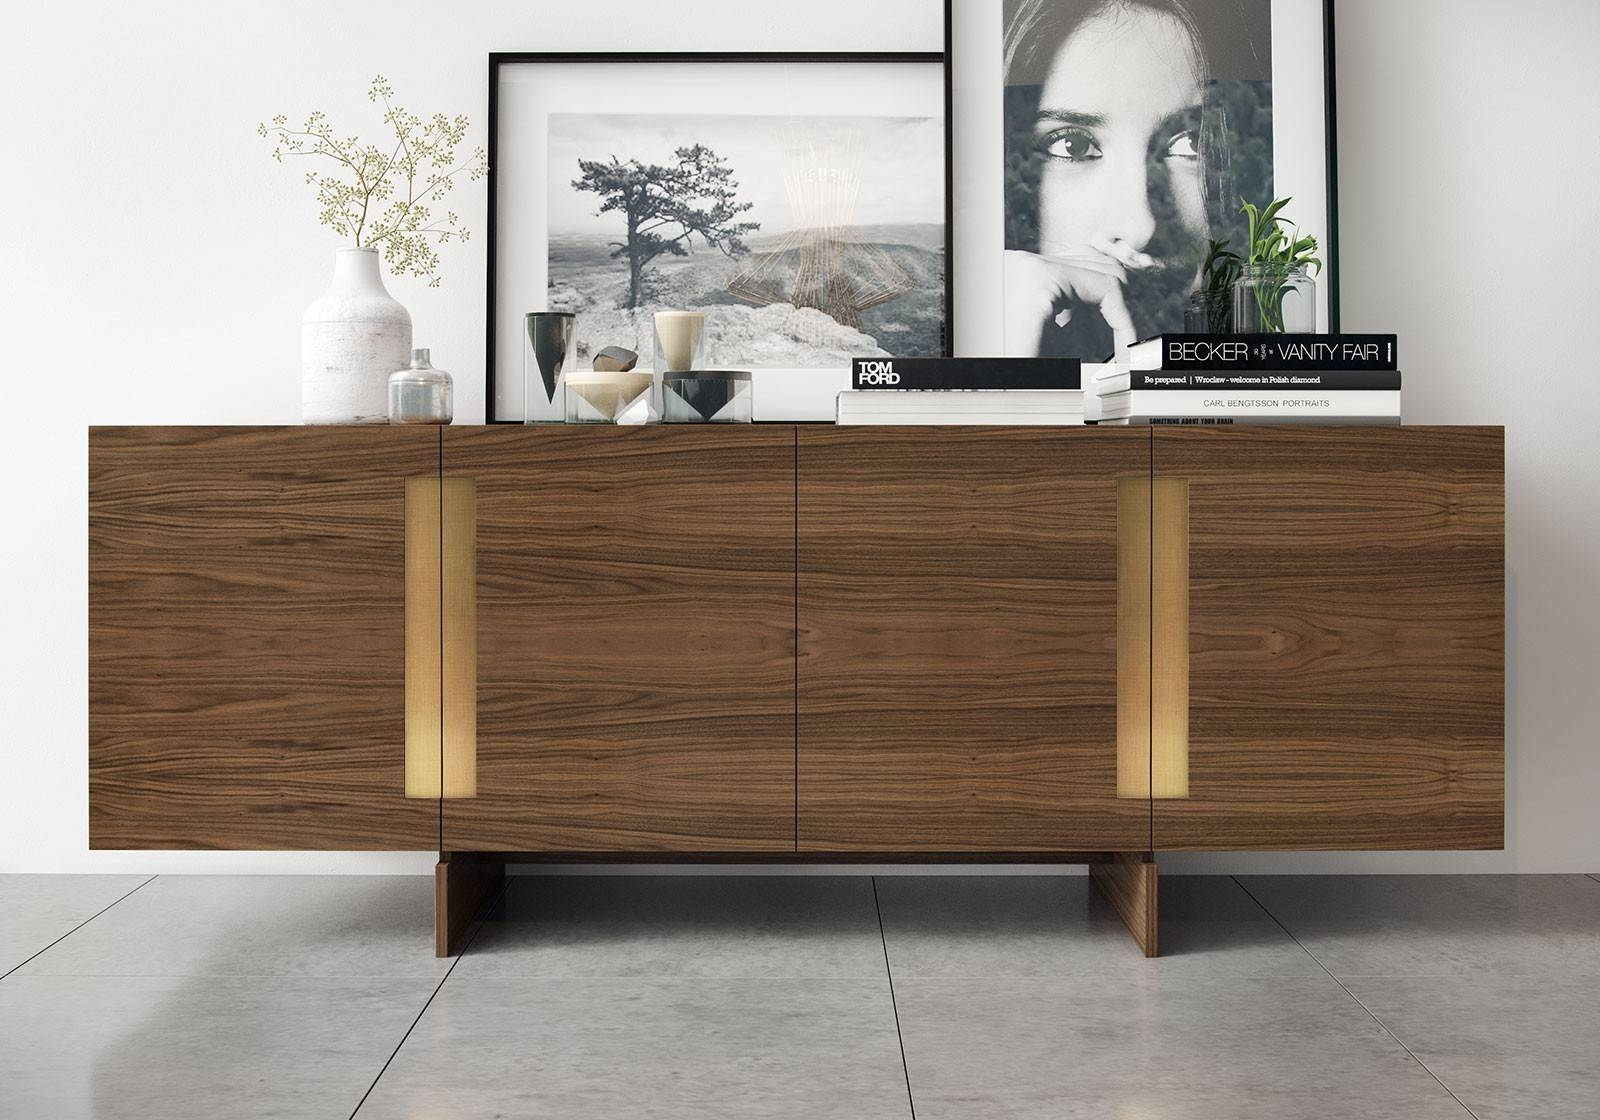 Furniture: Beautiful Profile Modern Sideboard For Living Room for Sideboards (Image 13 of 30)